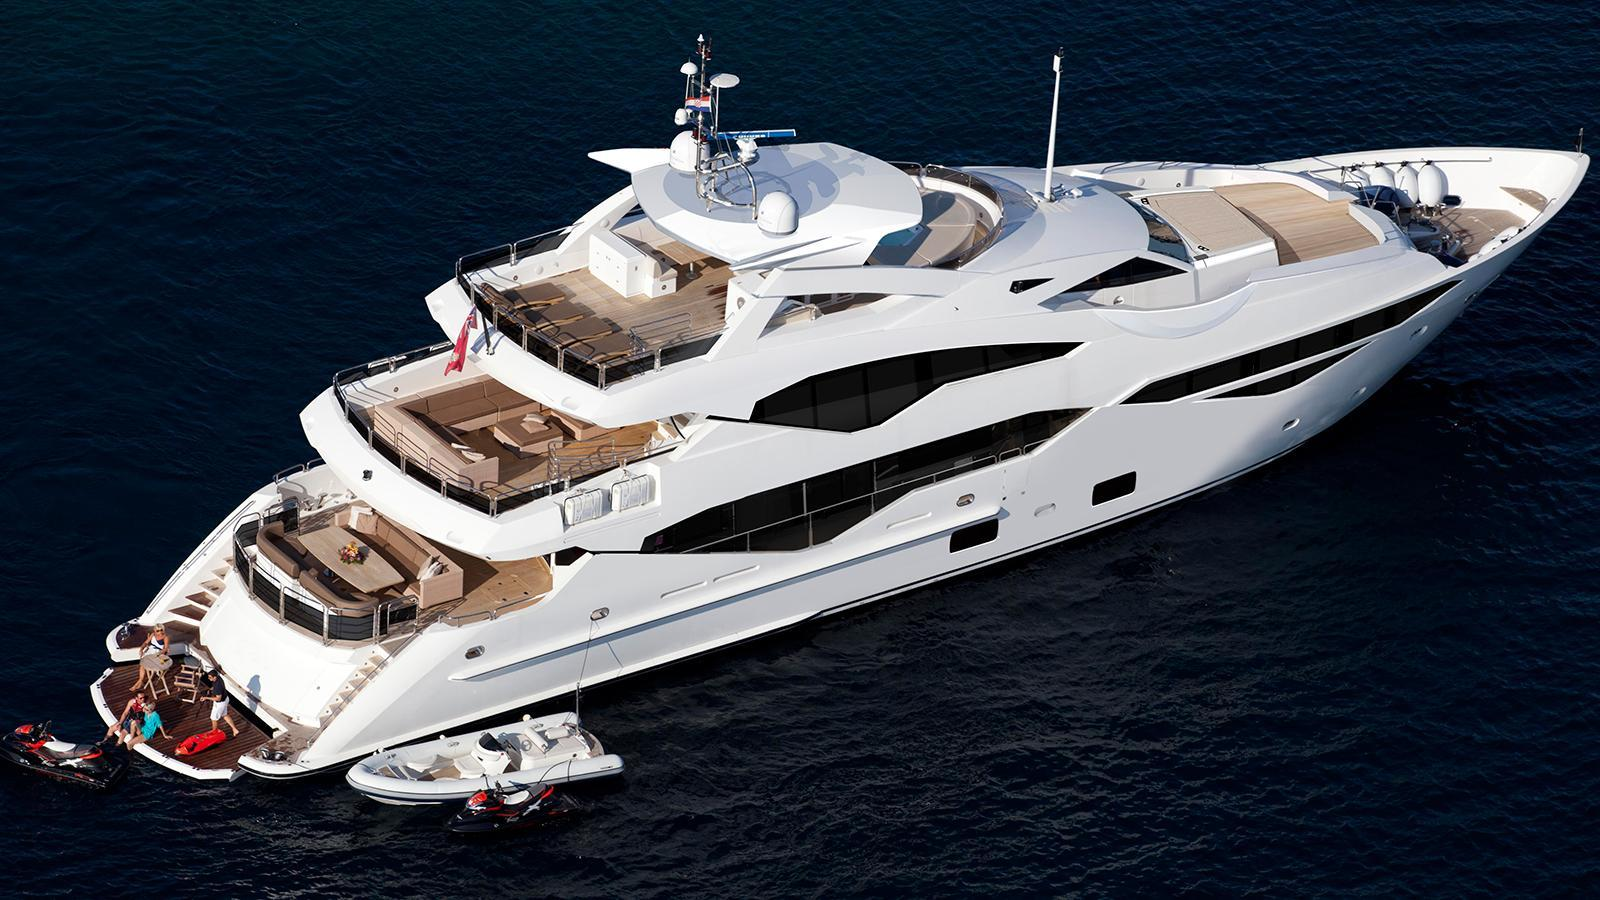 AQUA LIBRA 131 - Mega Yacht for Charter in Greece